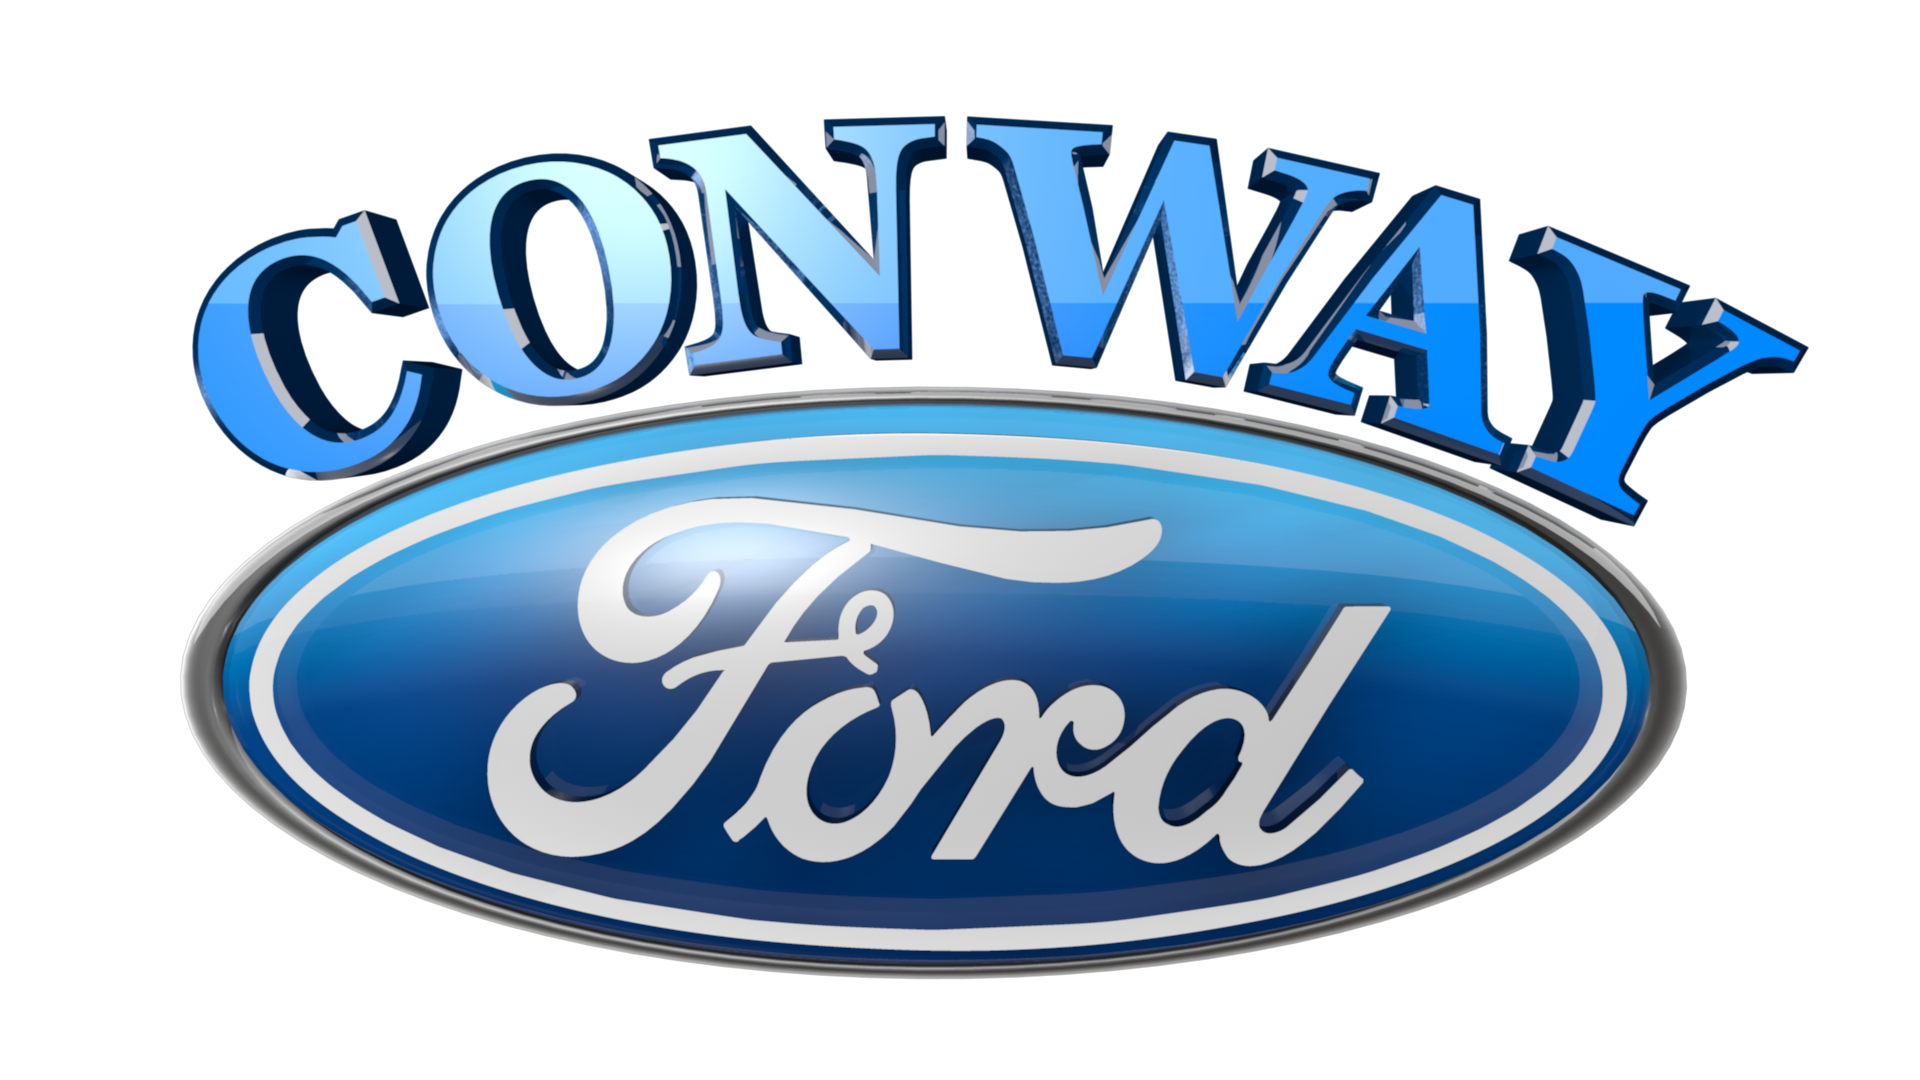 Conway Ford Inc logo